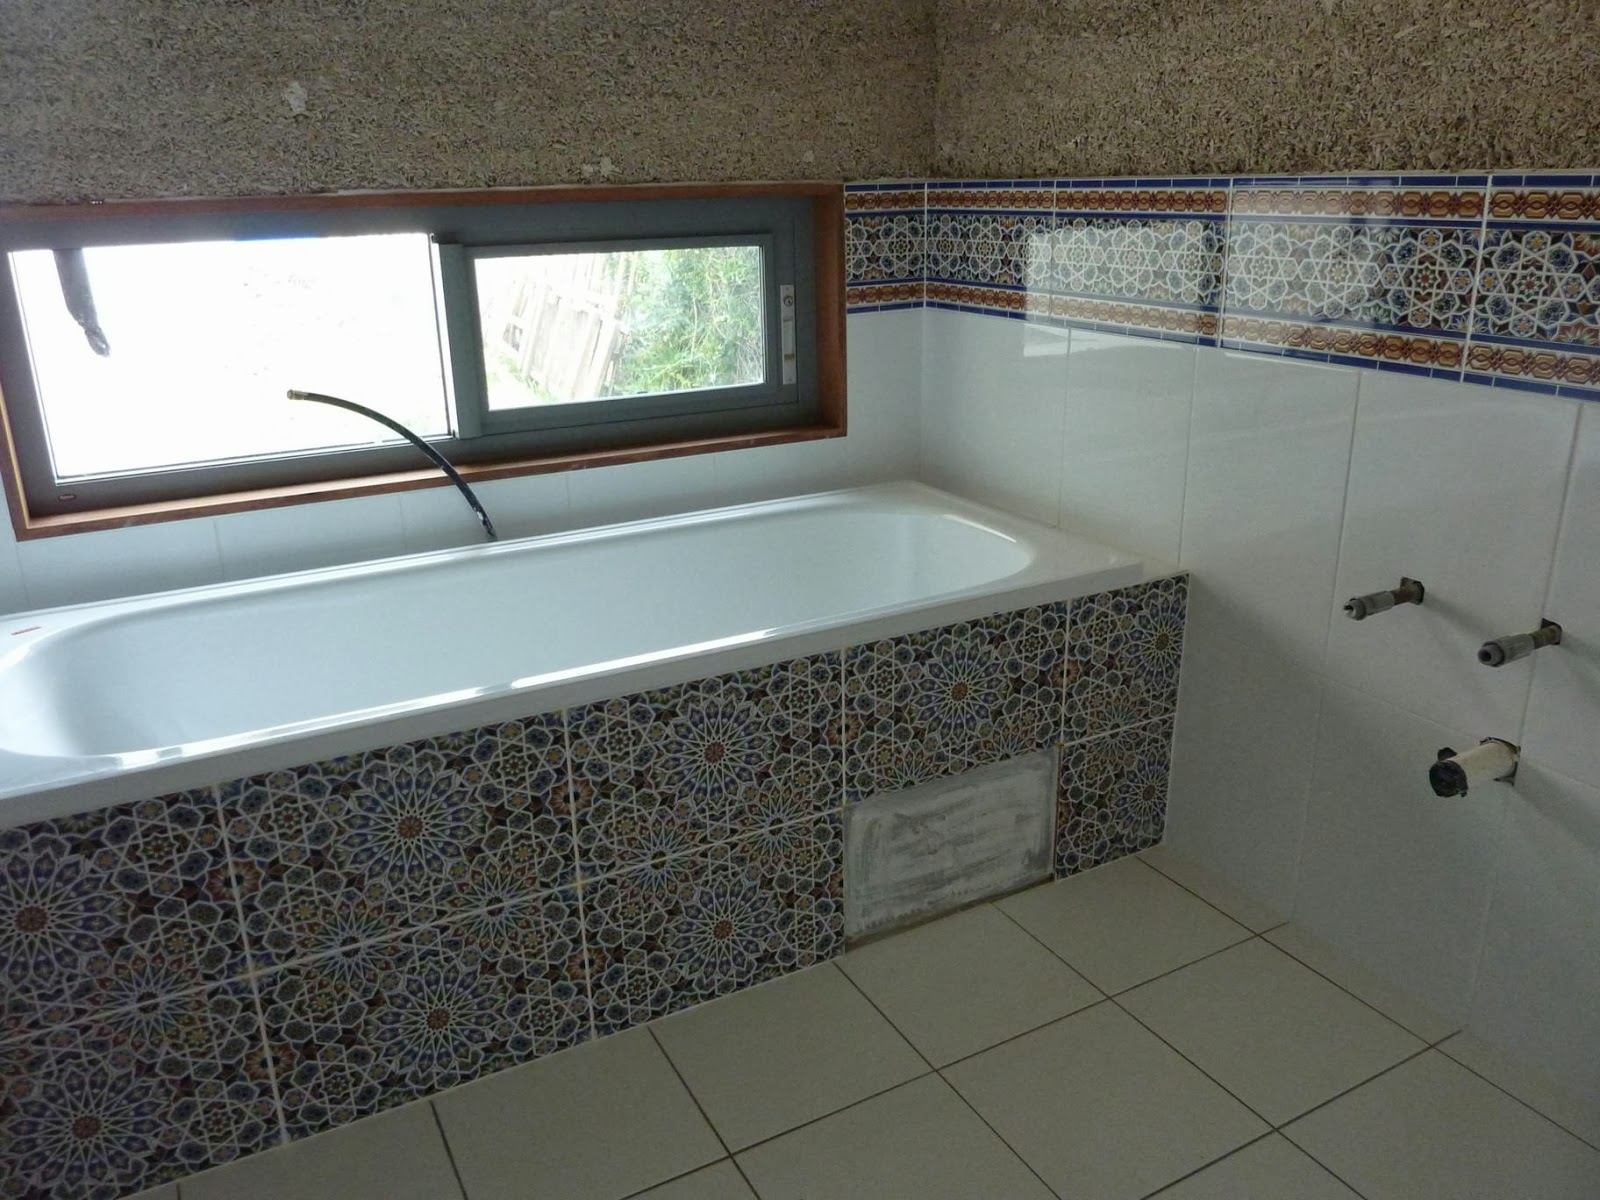 Culburra Hemp House: Bathroom Tiled